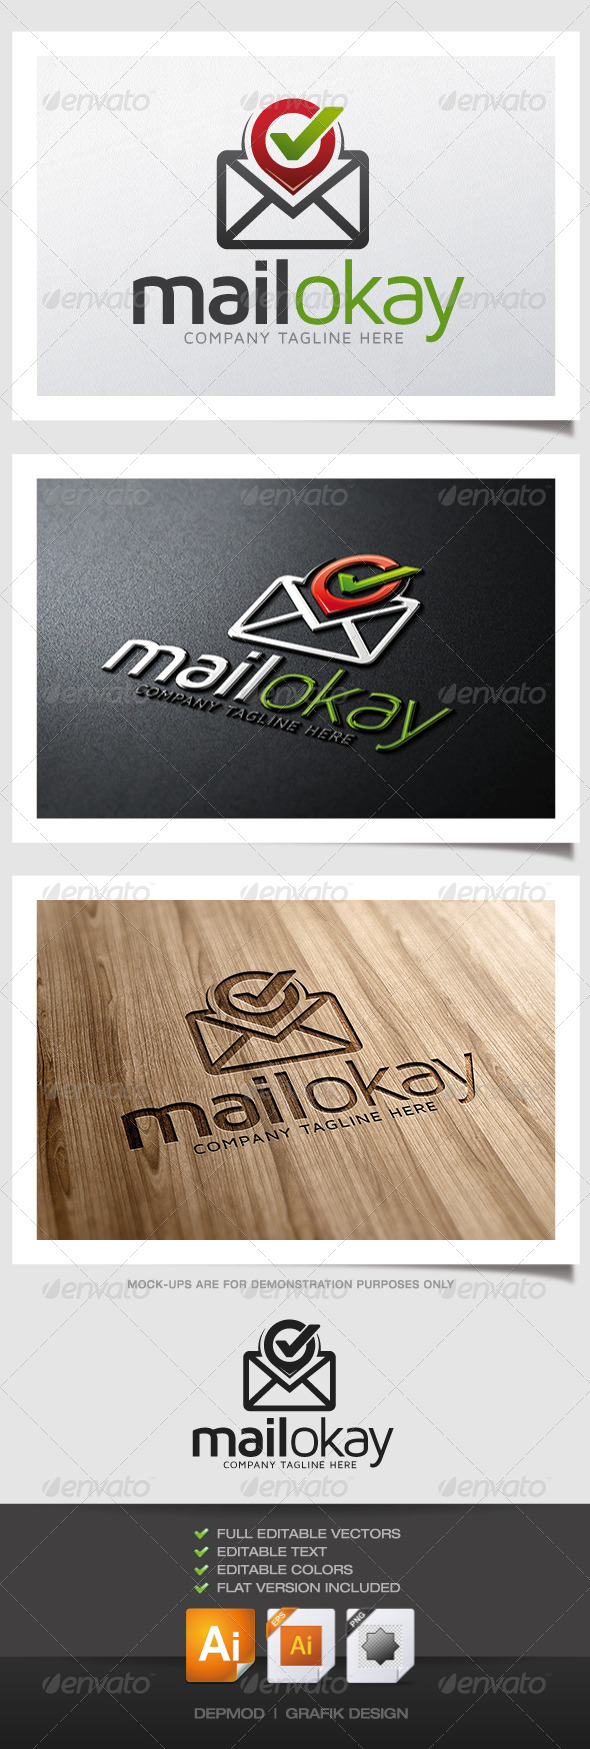 GraphicRiver Mail Okay Logo 4829866